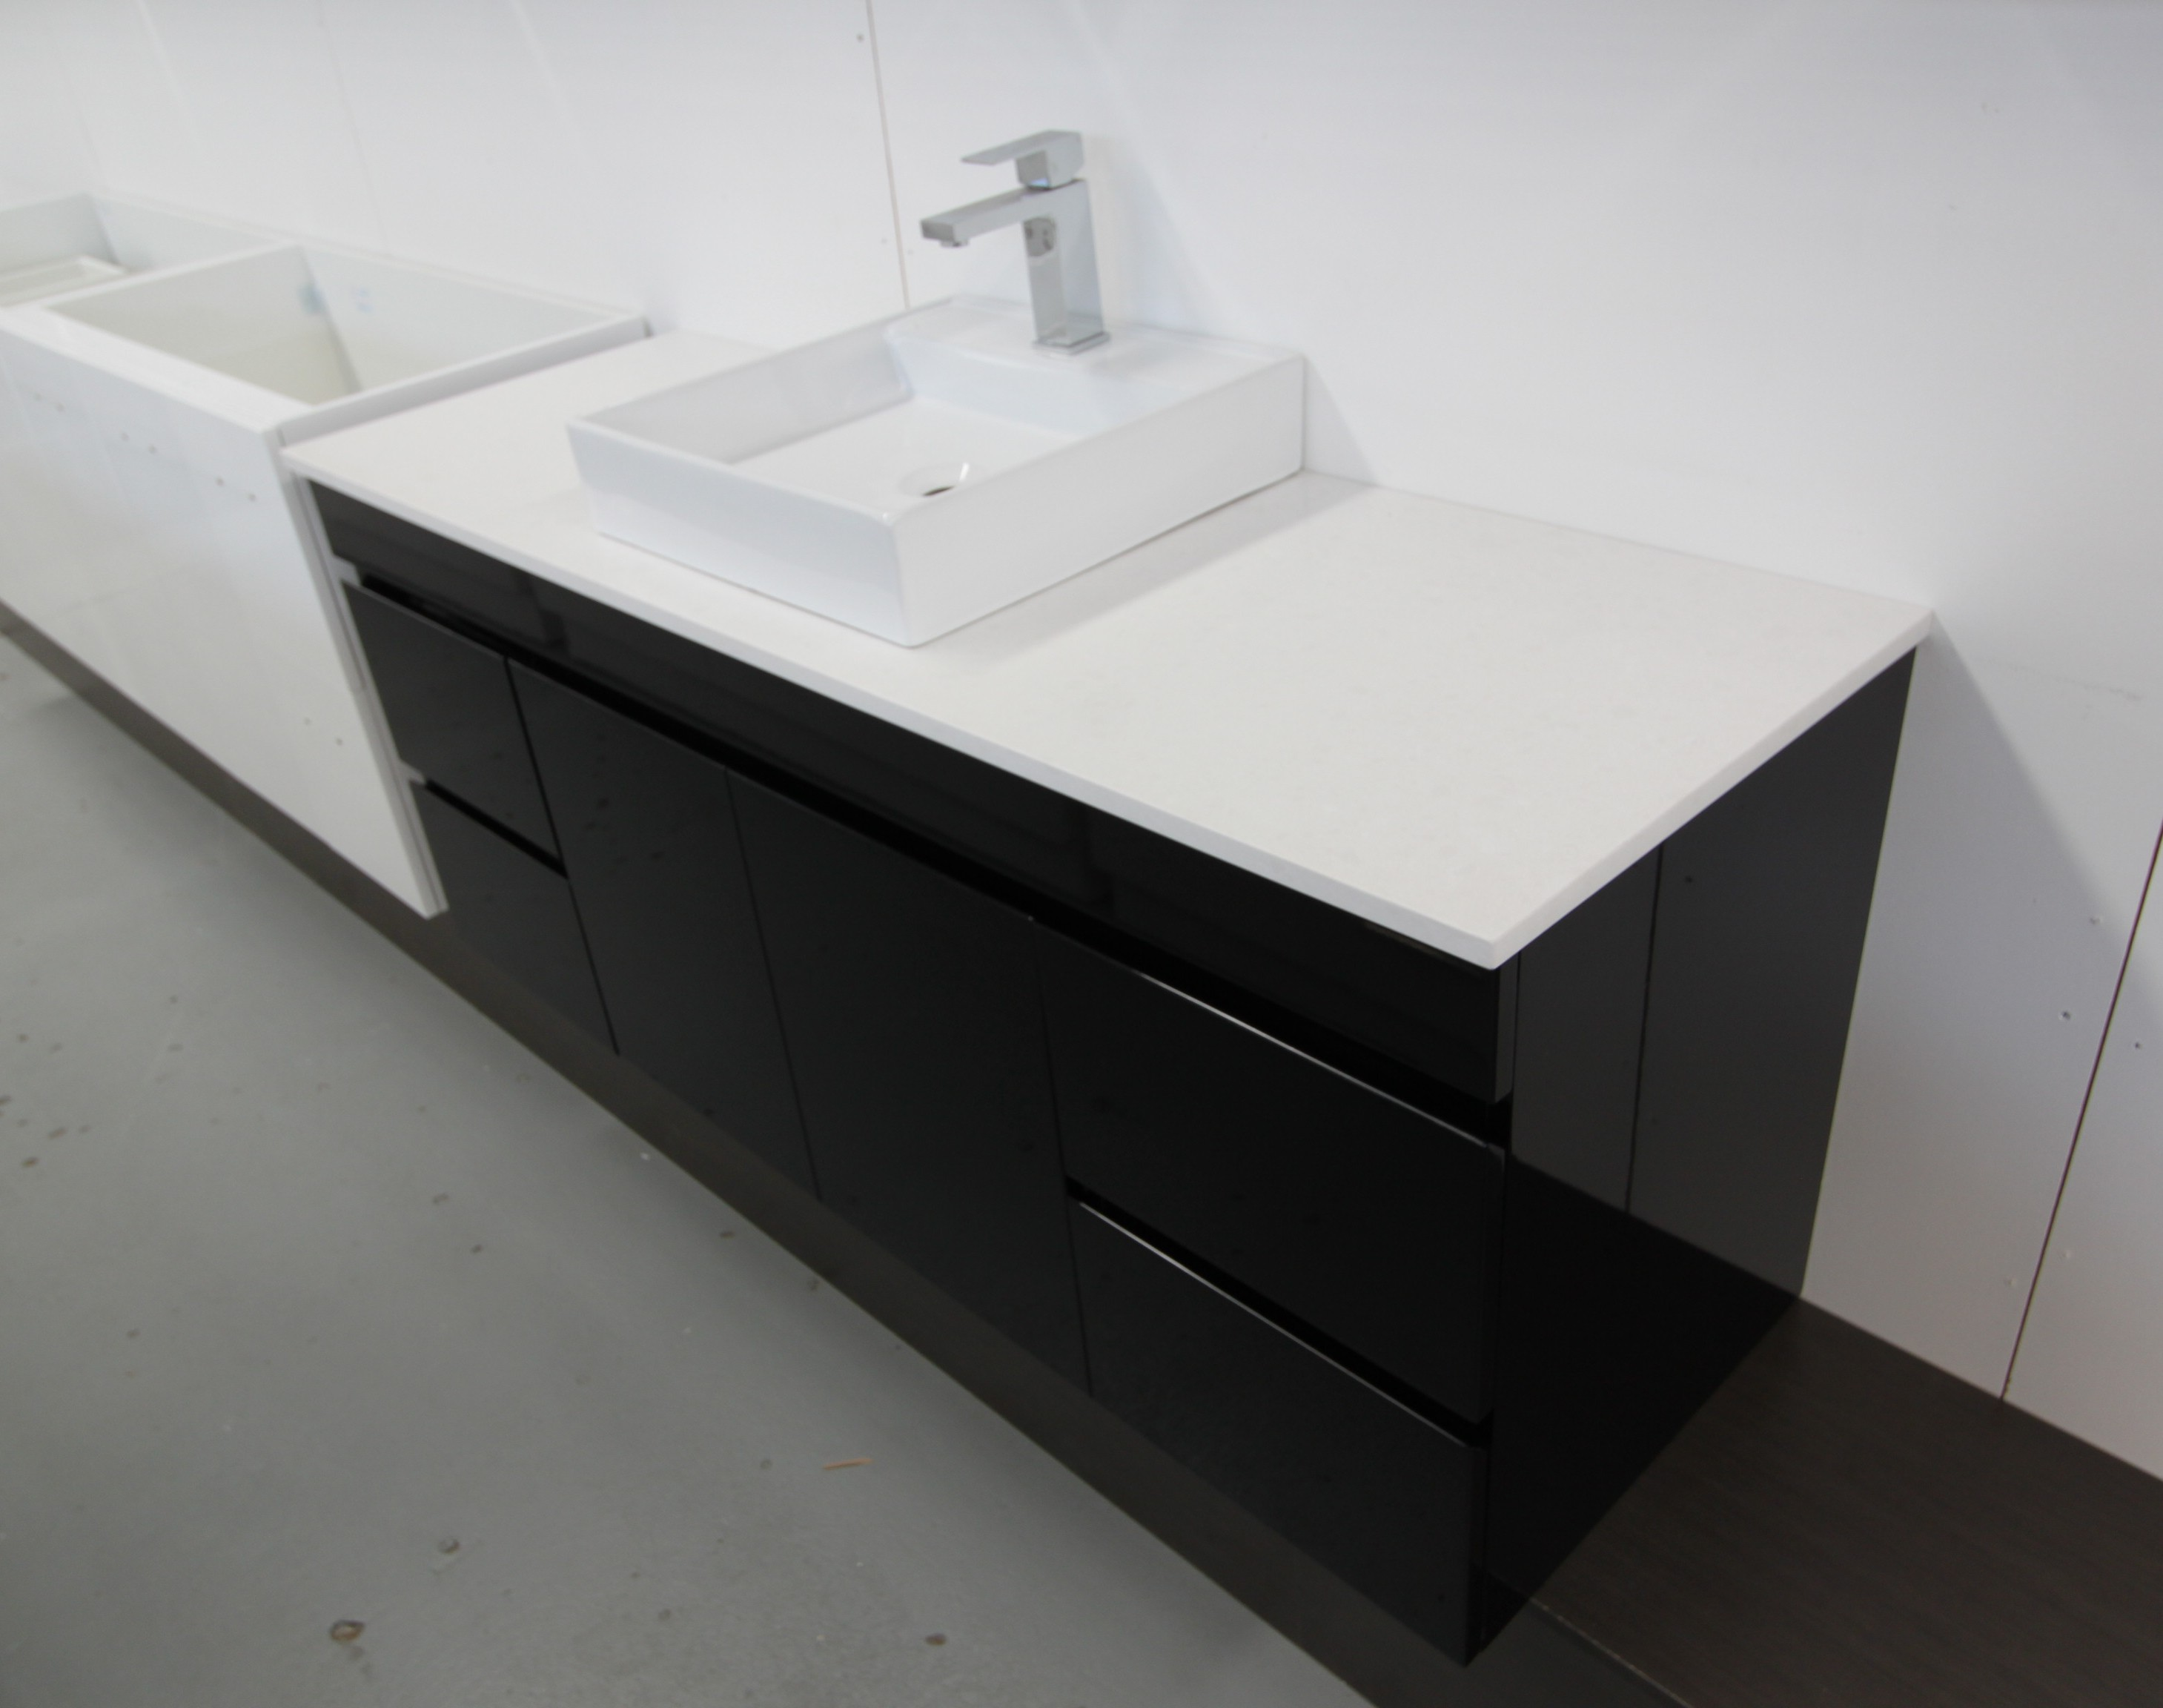 black wooden bathroom vanities with tops in white plus sink and faucet for bathroom decor ideas